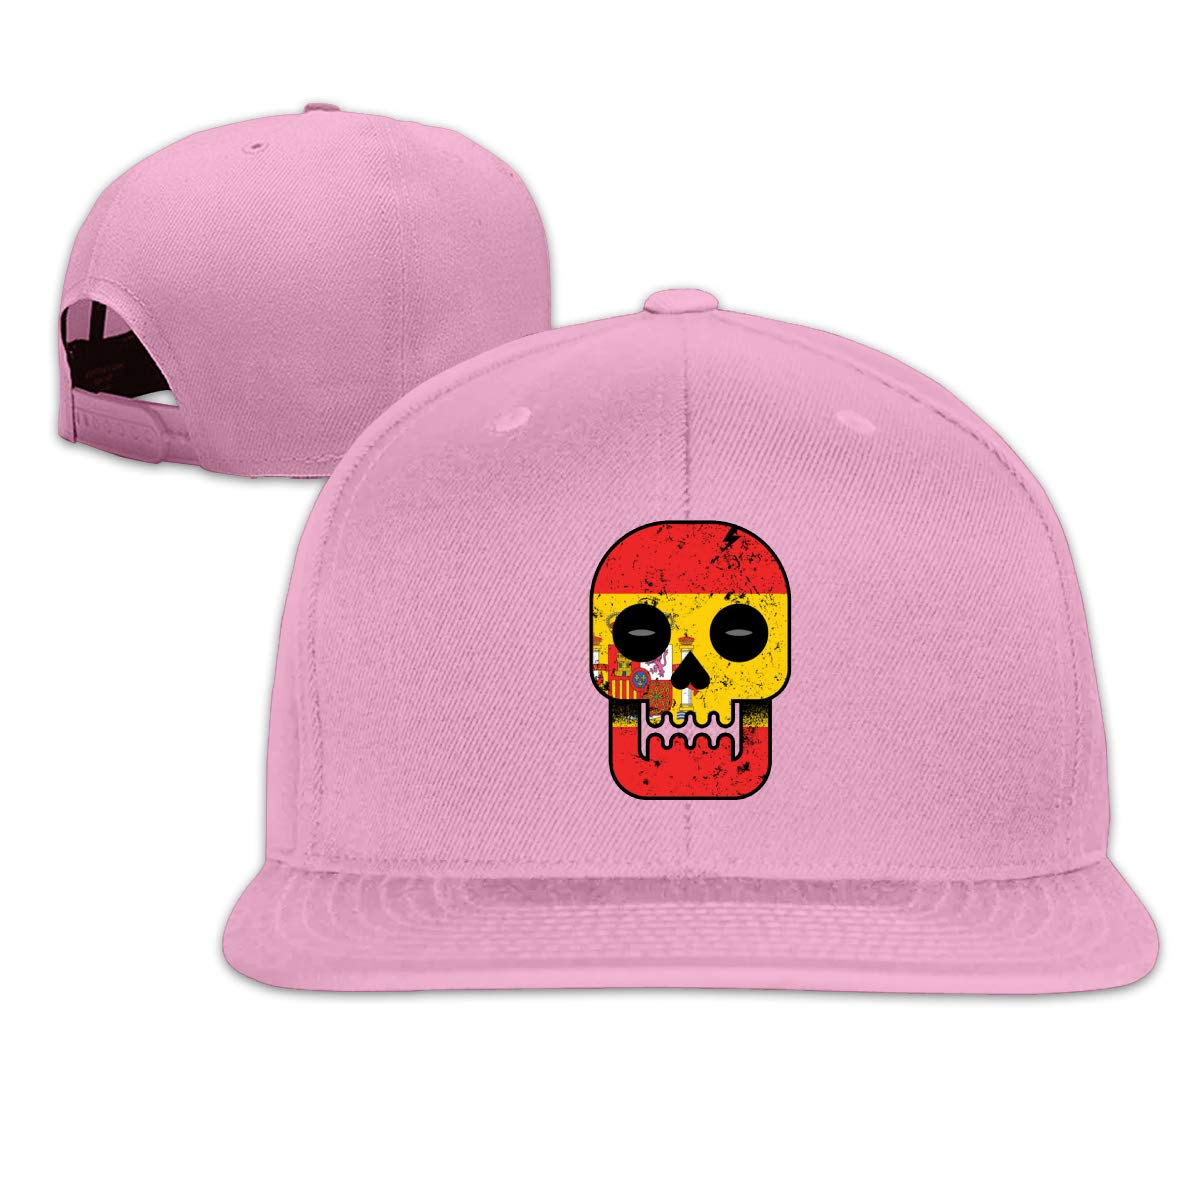 Spain Till I Die Unisex Adult Hats Classic Baseball Caps Sports Hat Peaked Cap Pink